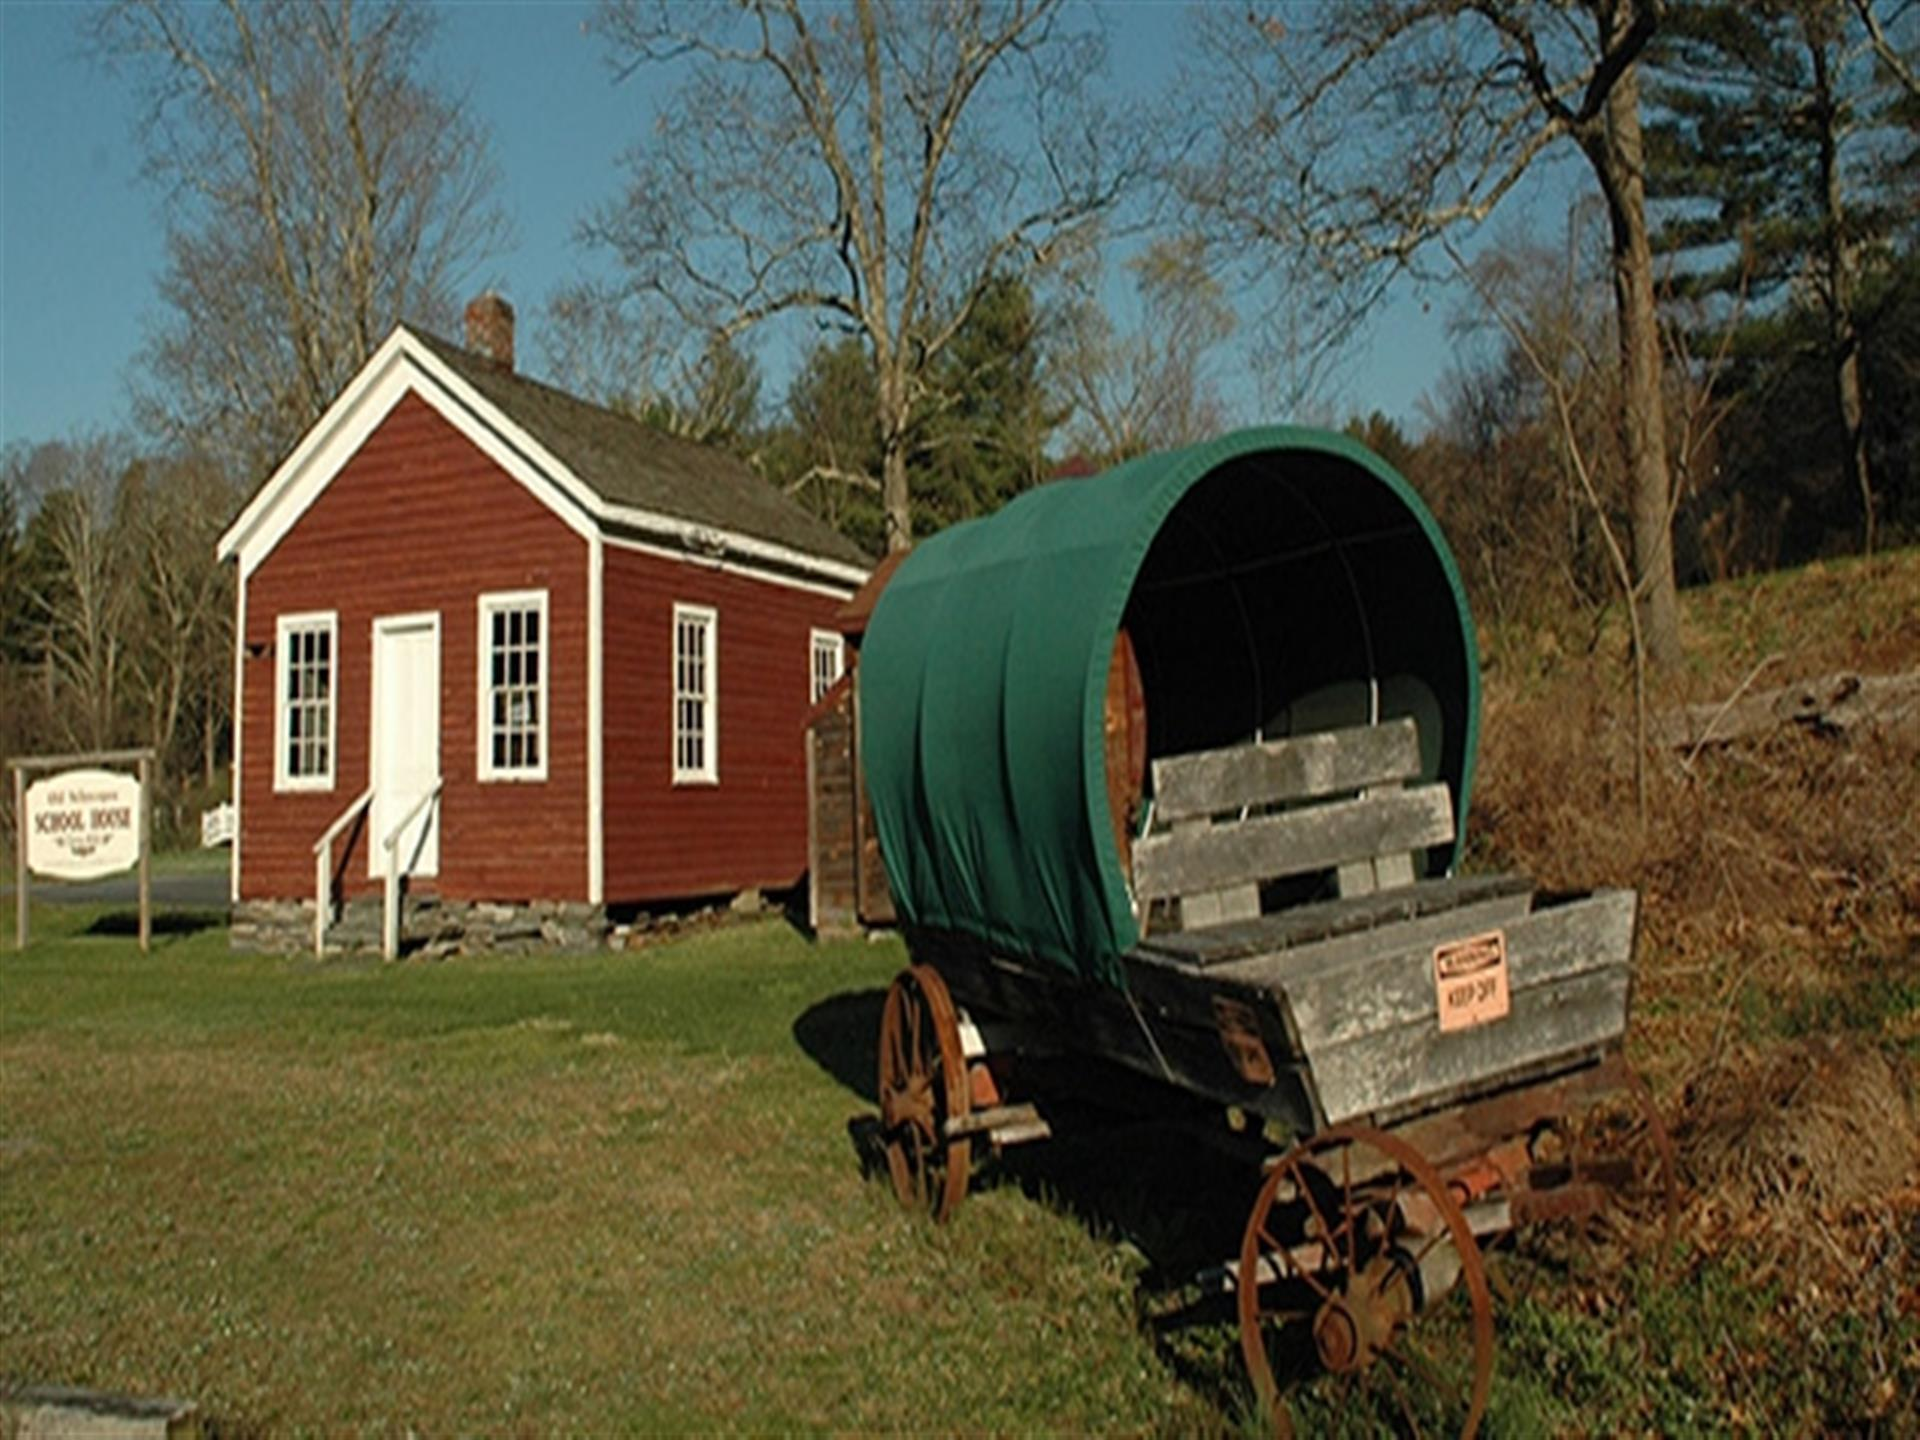 Vintage wagon next to Old Schoepee School House.